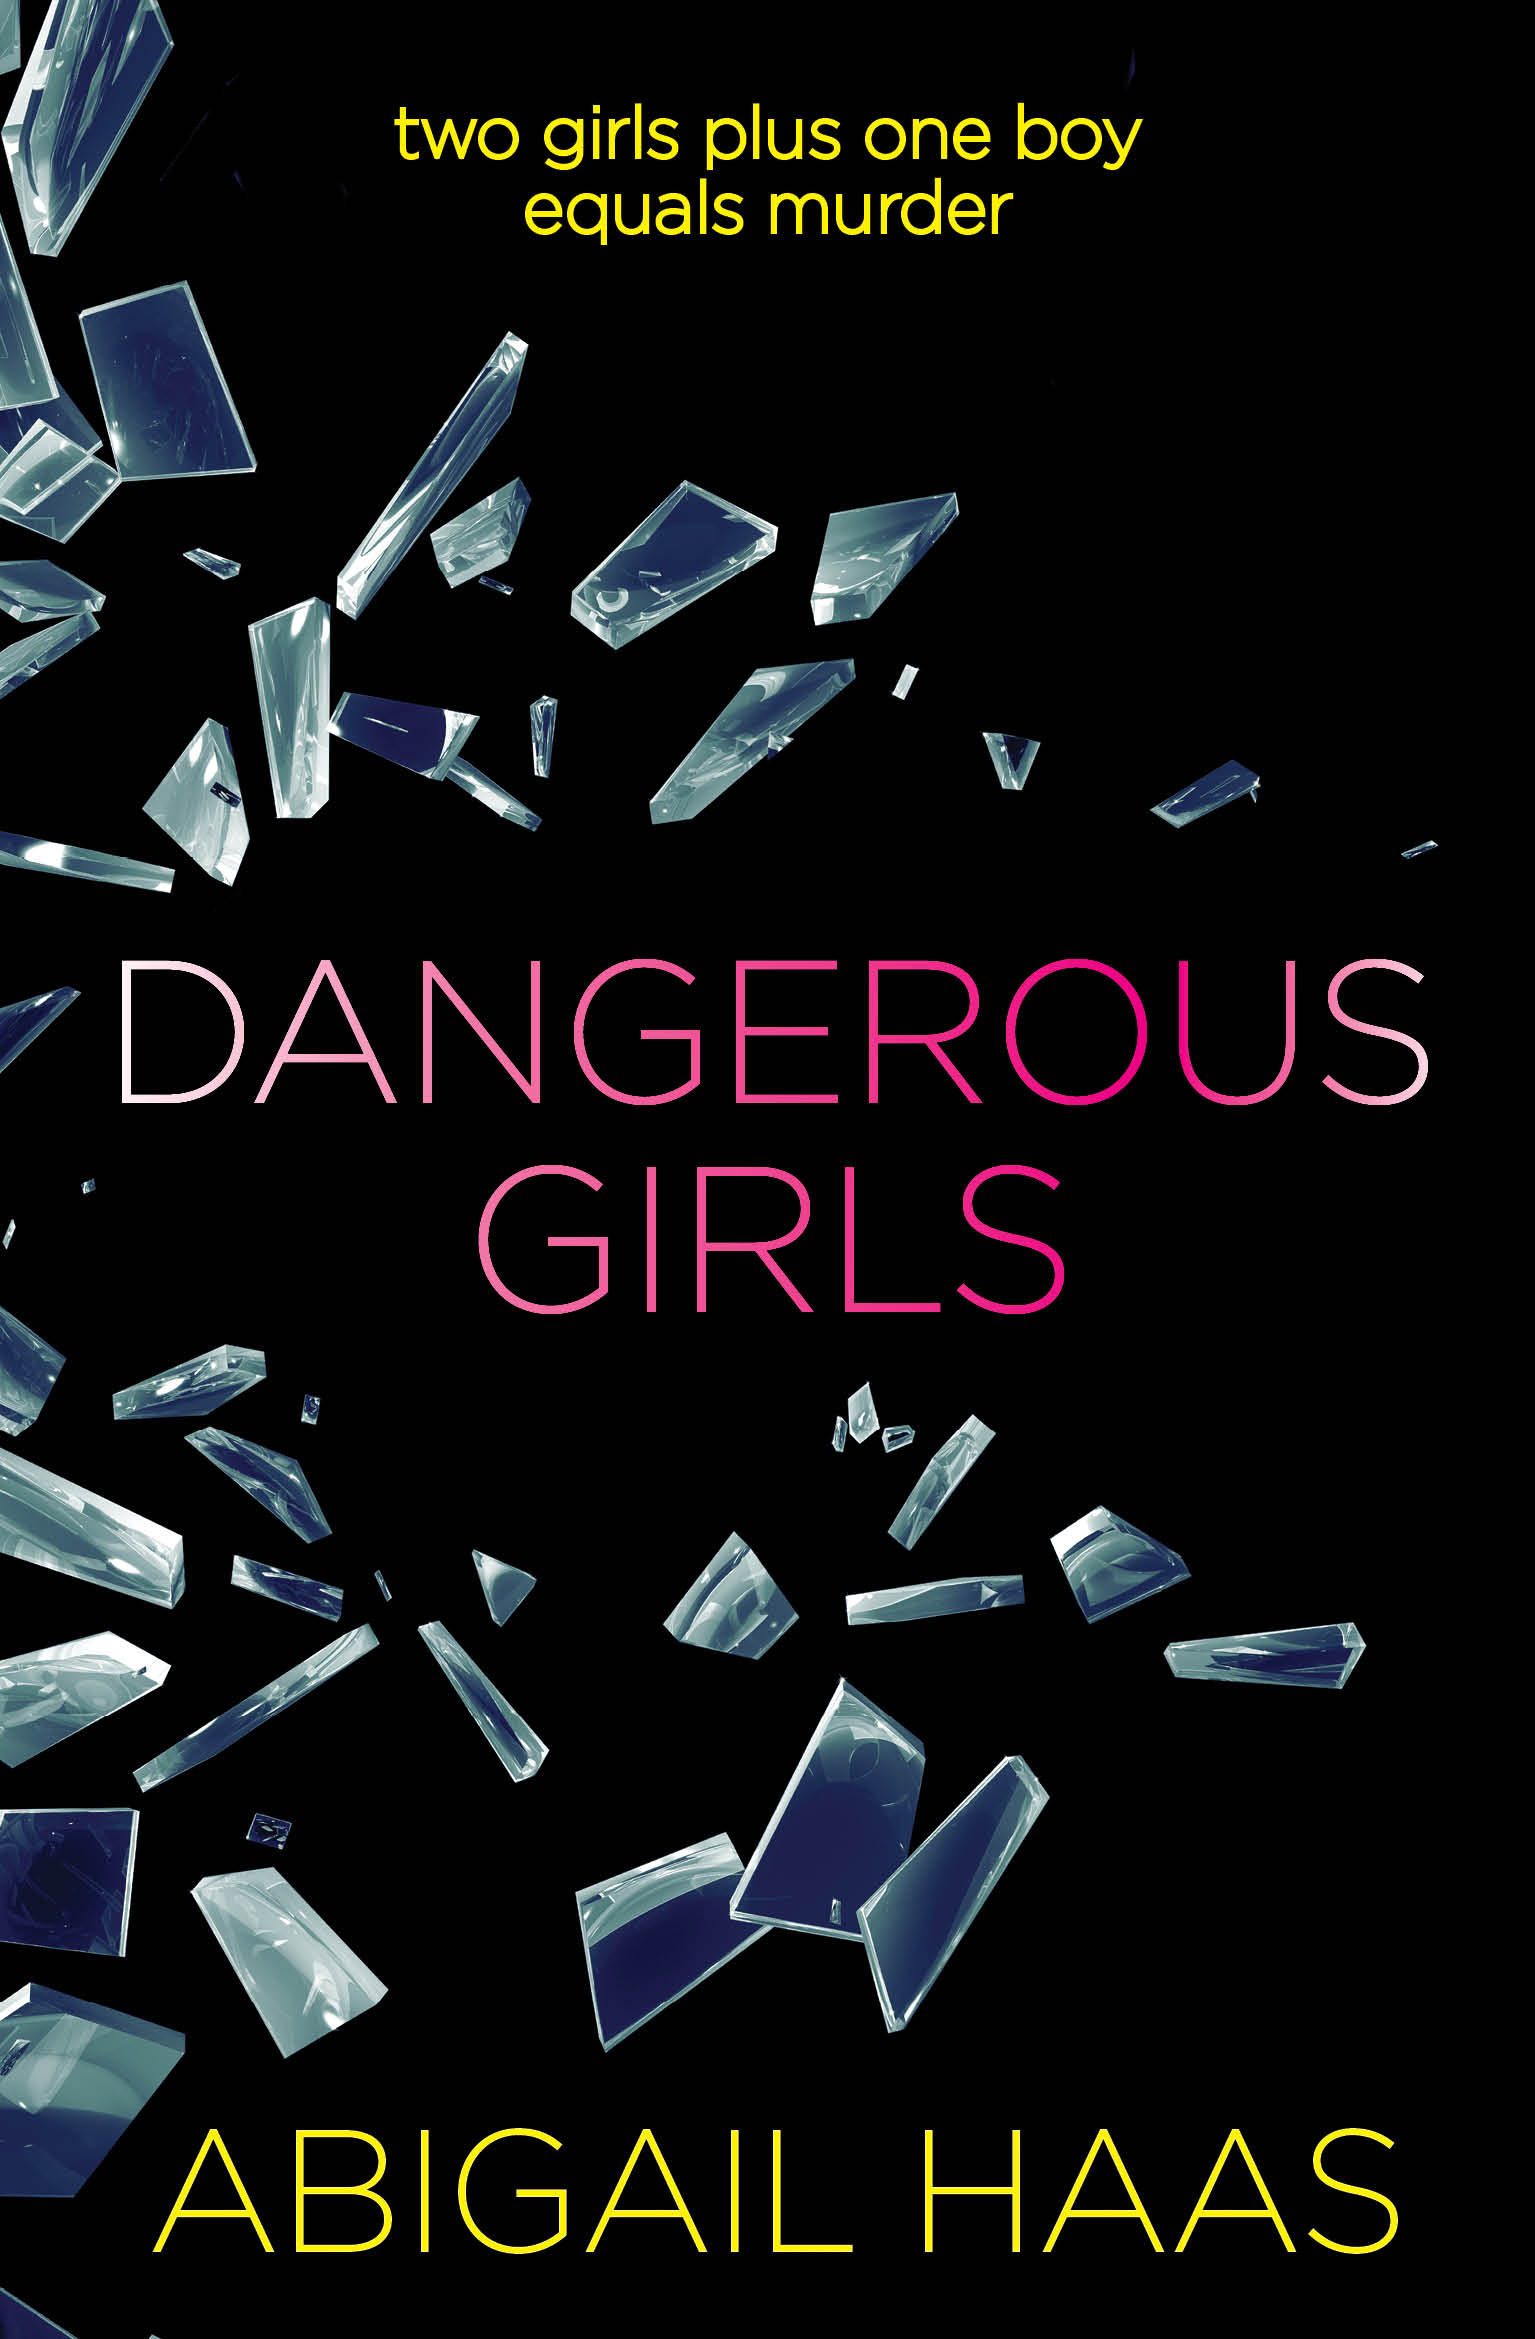 http://abbymcdonald.com/wp-content/uploads/2013/06/Dangerous-Girls-UK-12.jpg